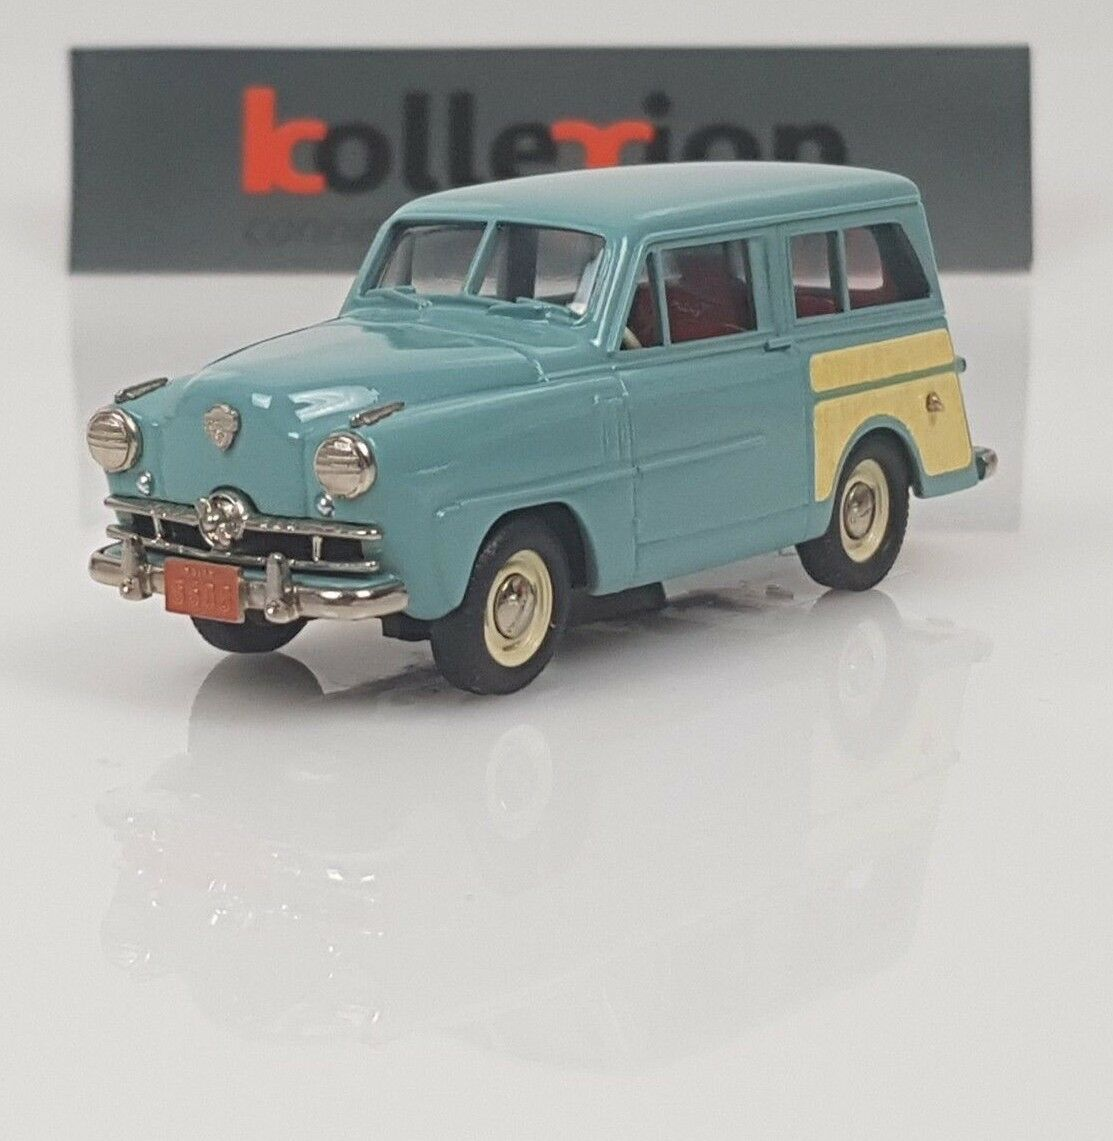 US MODELS MINT US18A 1951 CROSLEY Super Station Wagon 1.43 1.43 1.43 25549b